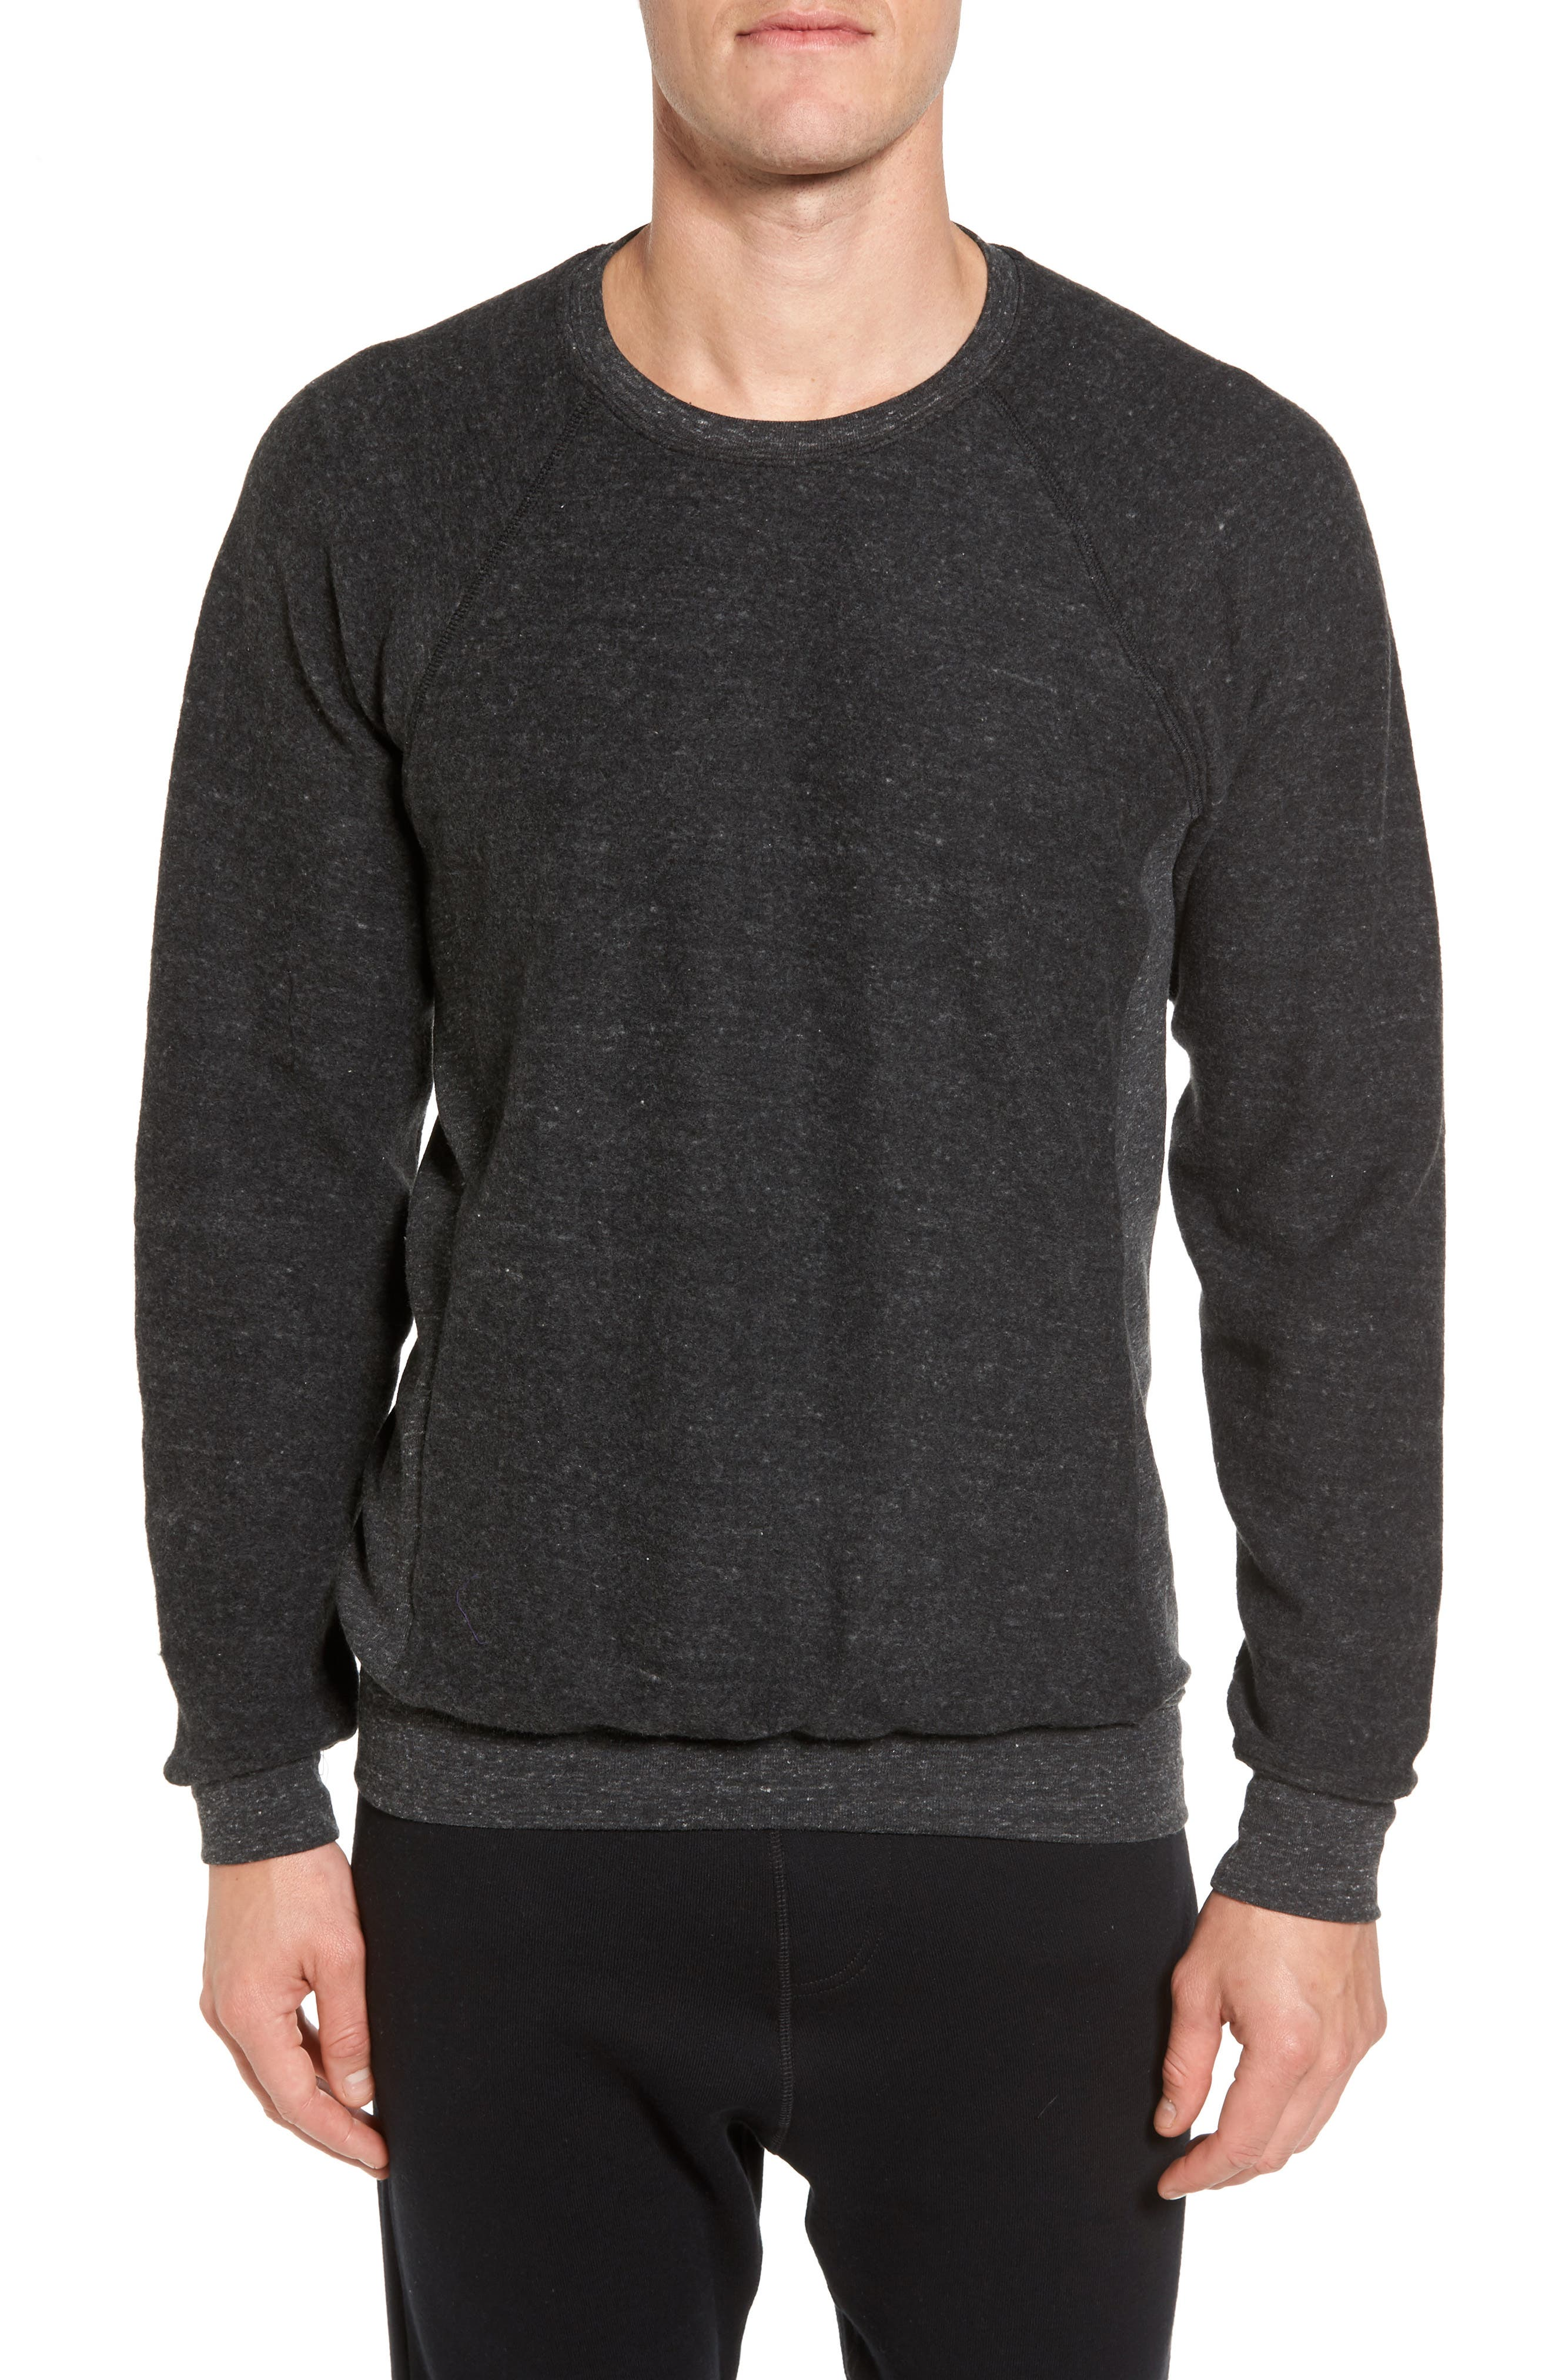 Relaxed Fit Felted Sweatshirt,                         Main,                         color, CHARCOAL BLACK TRIBLEND